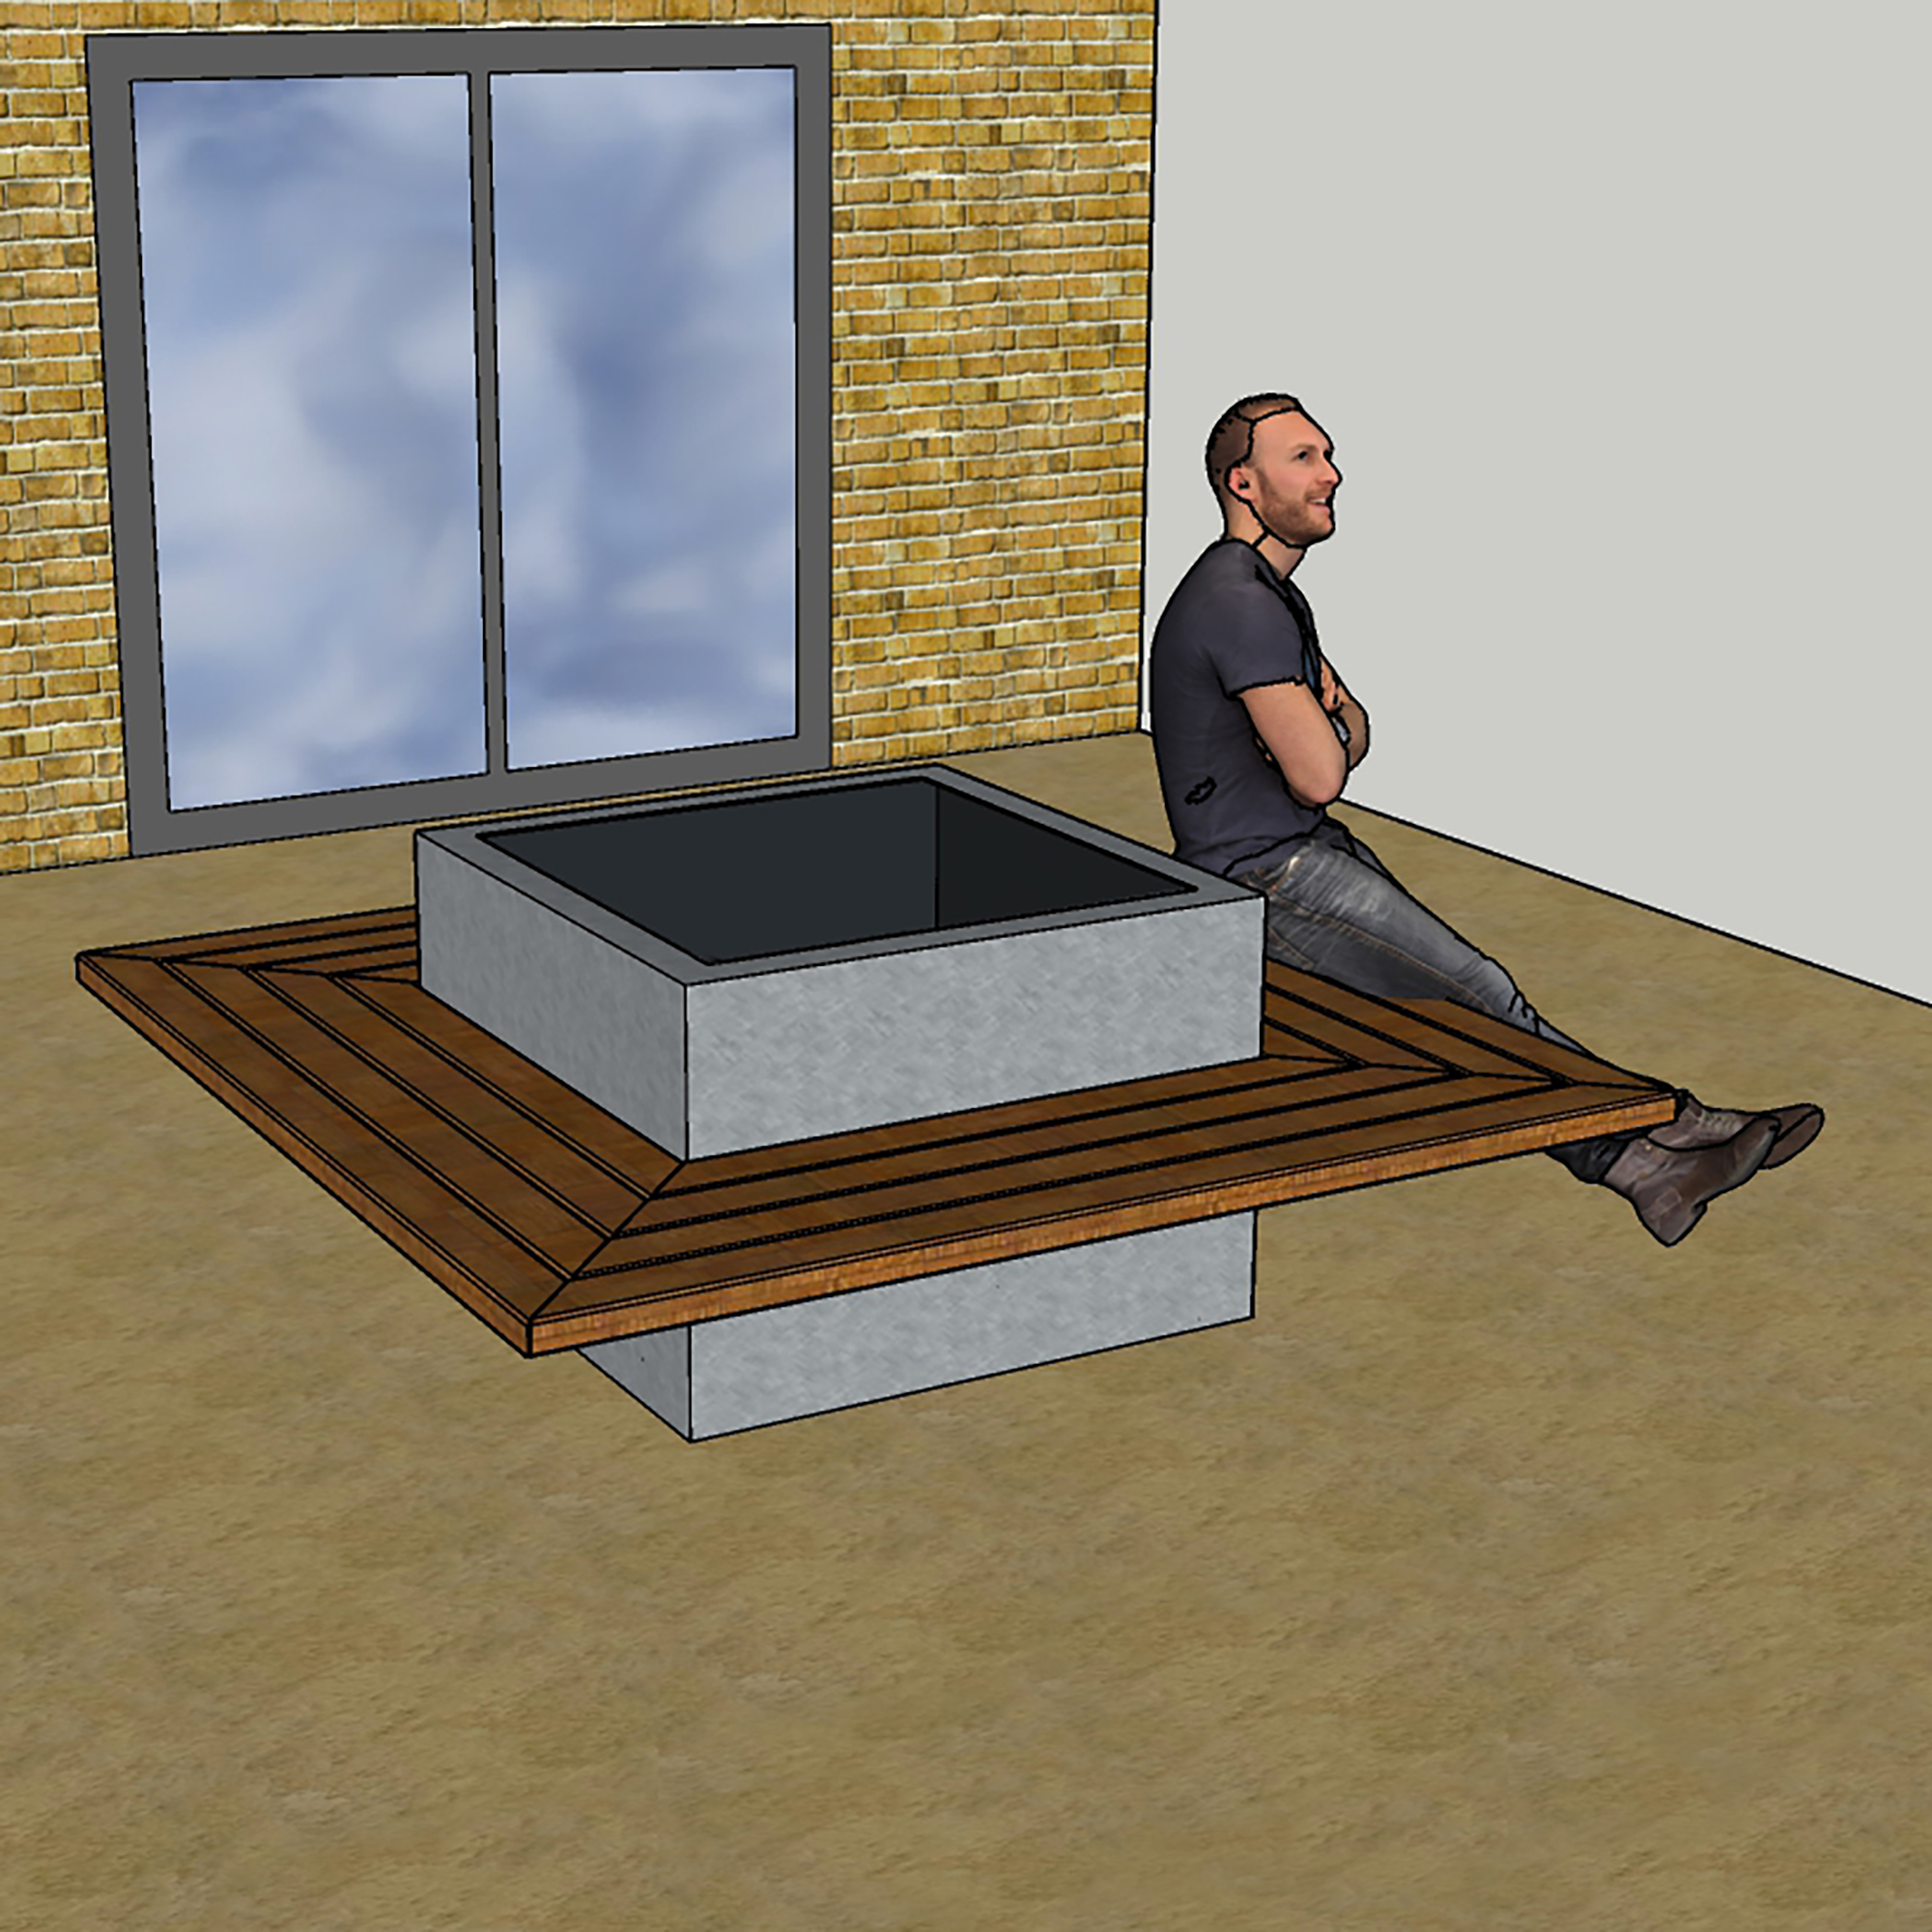 SMALL-GARDEN-DESIGN-PLAN-1-Cu100-with-floating-seating-all-sides